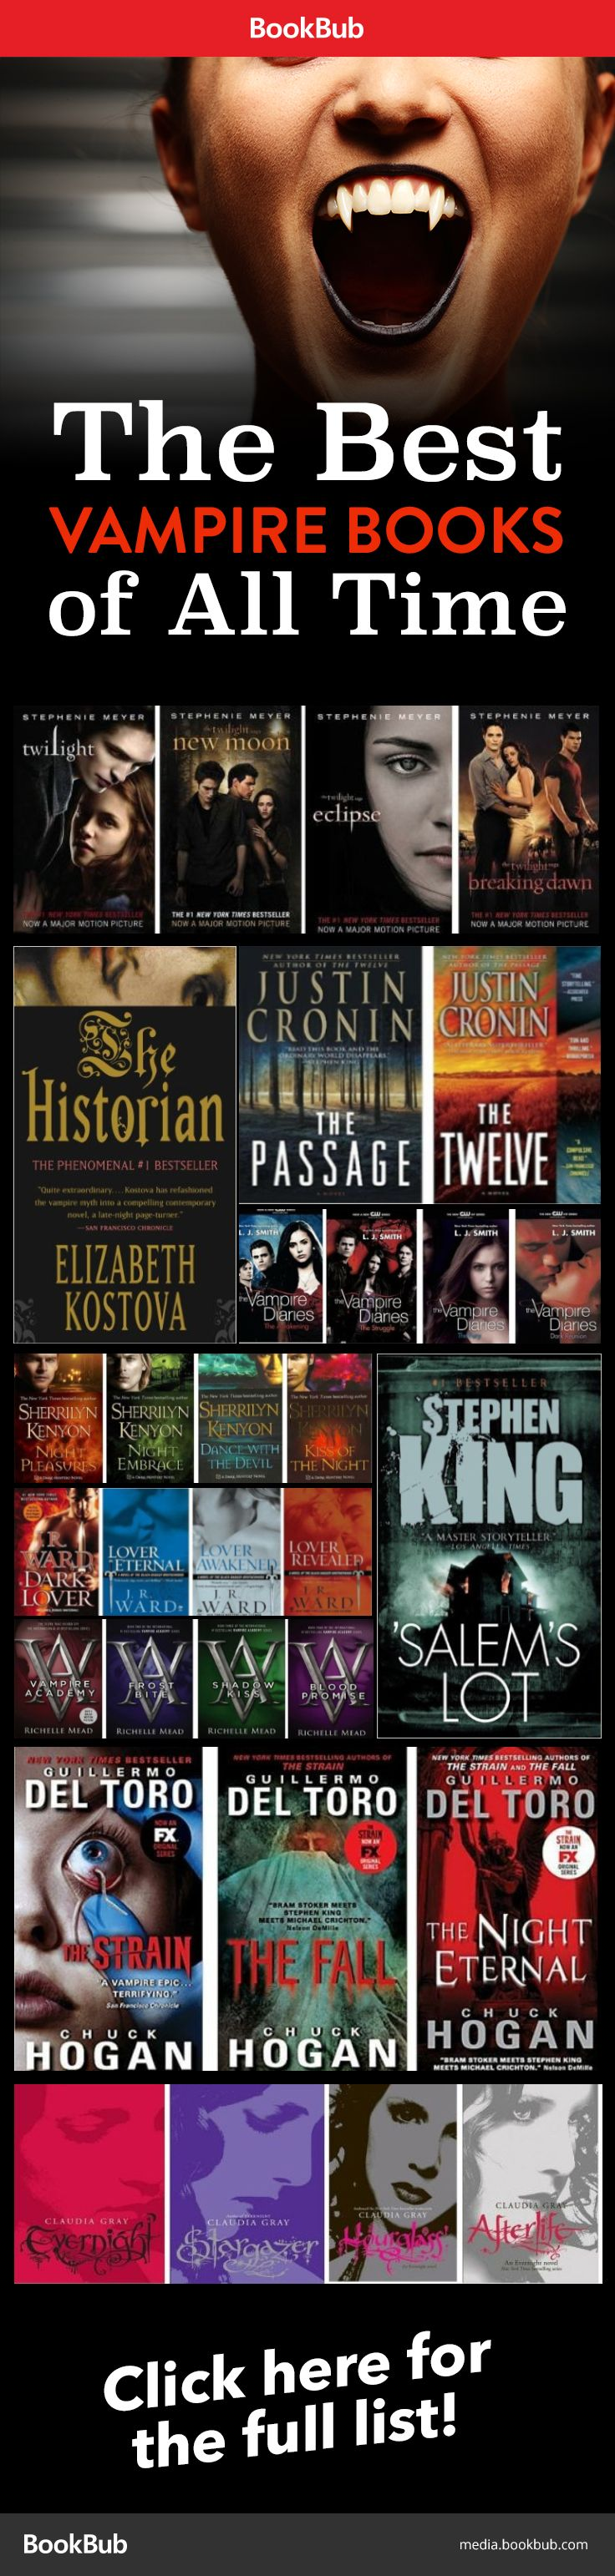 17 Of The Best Vampire Books Of All Time